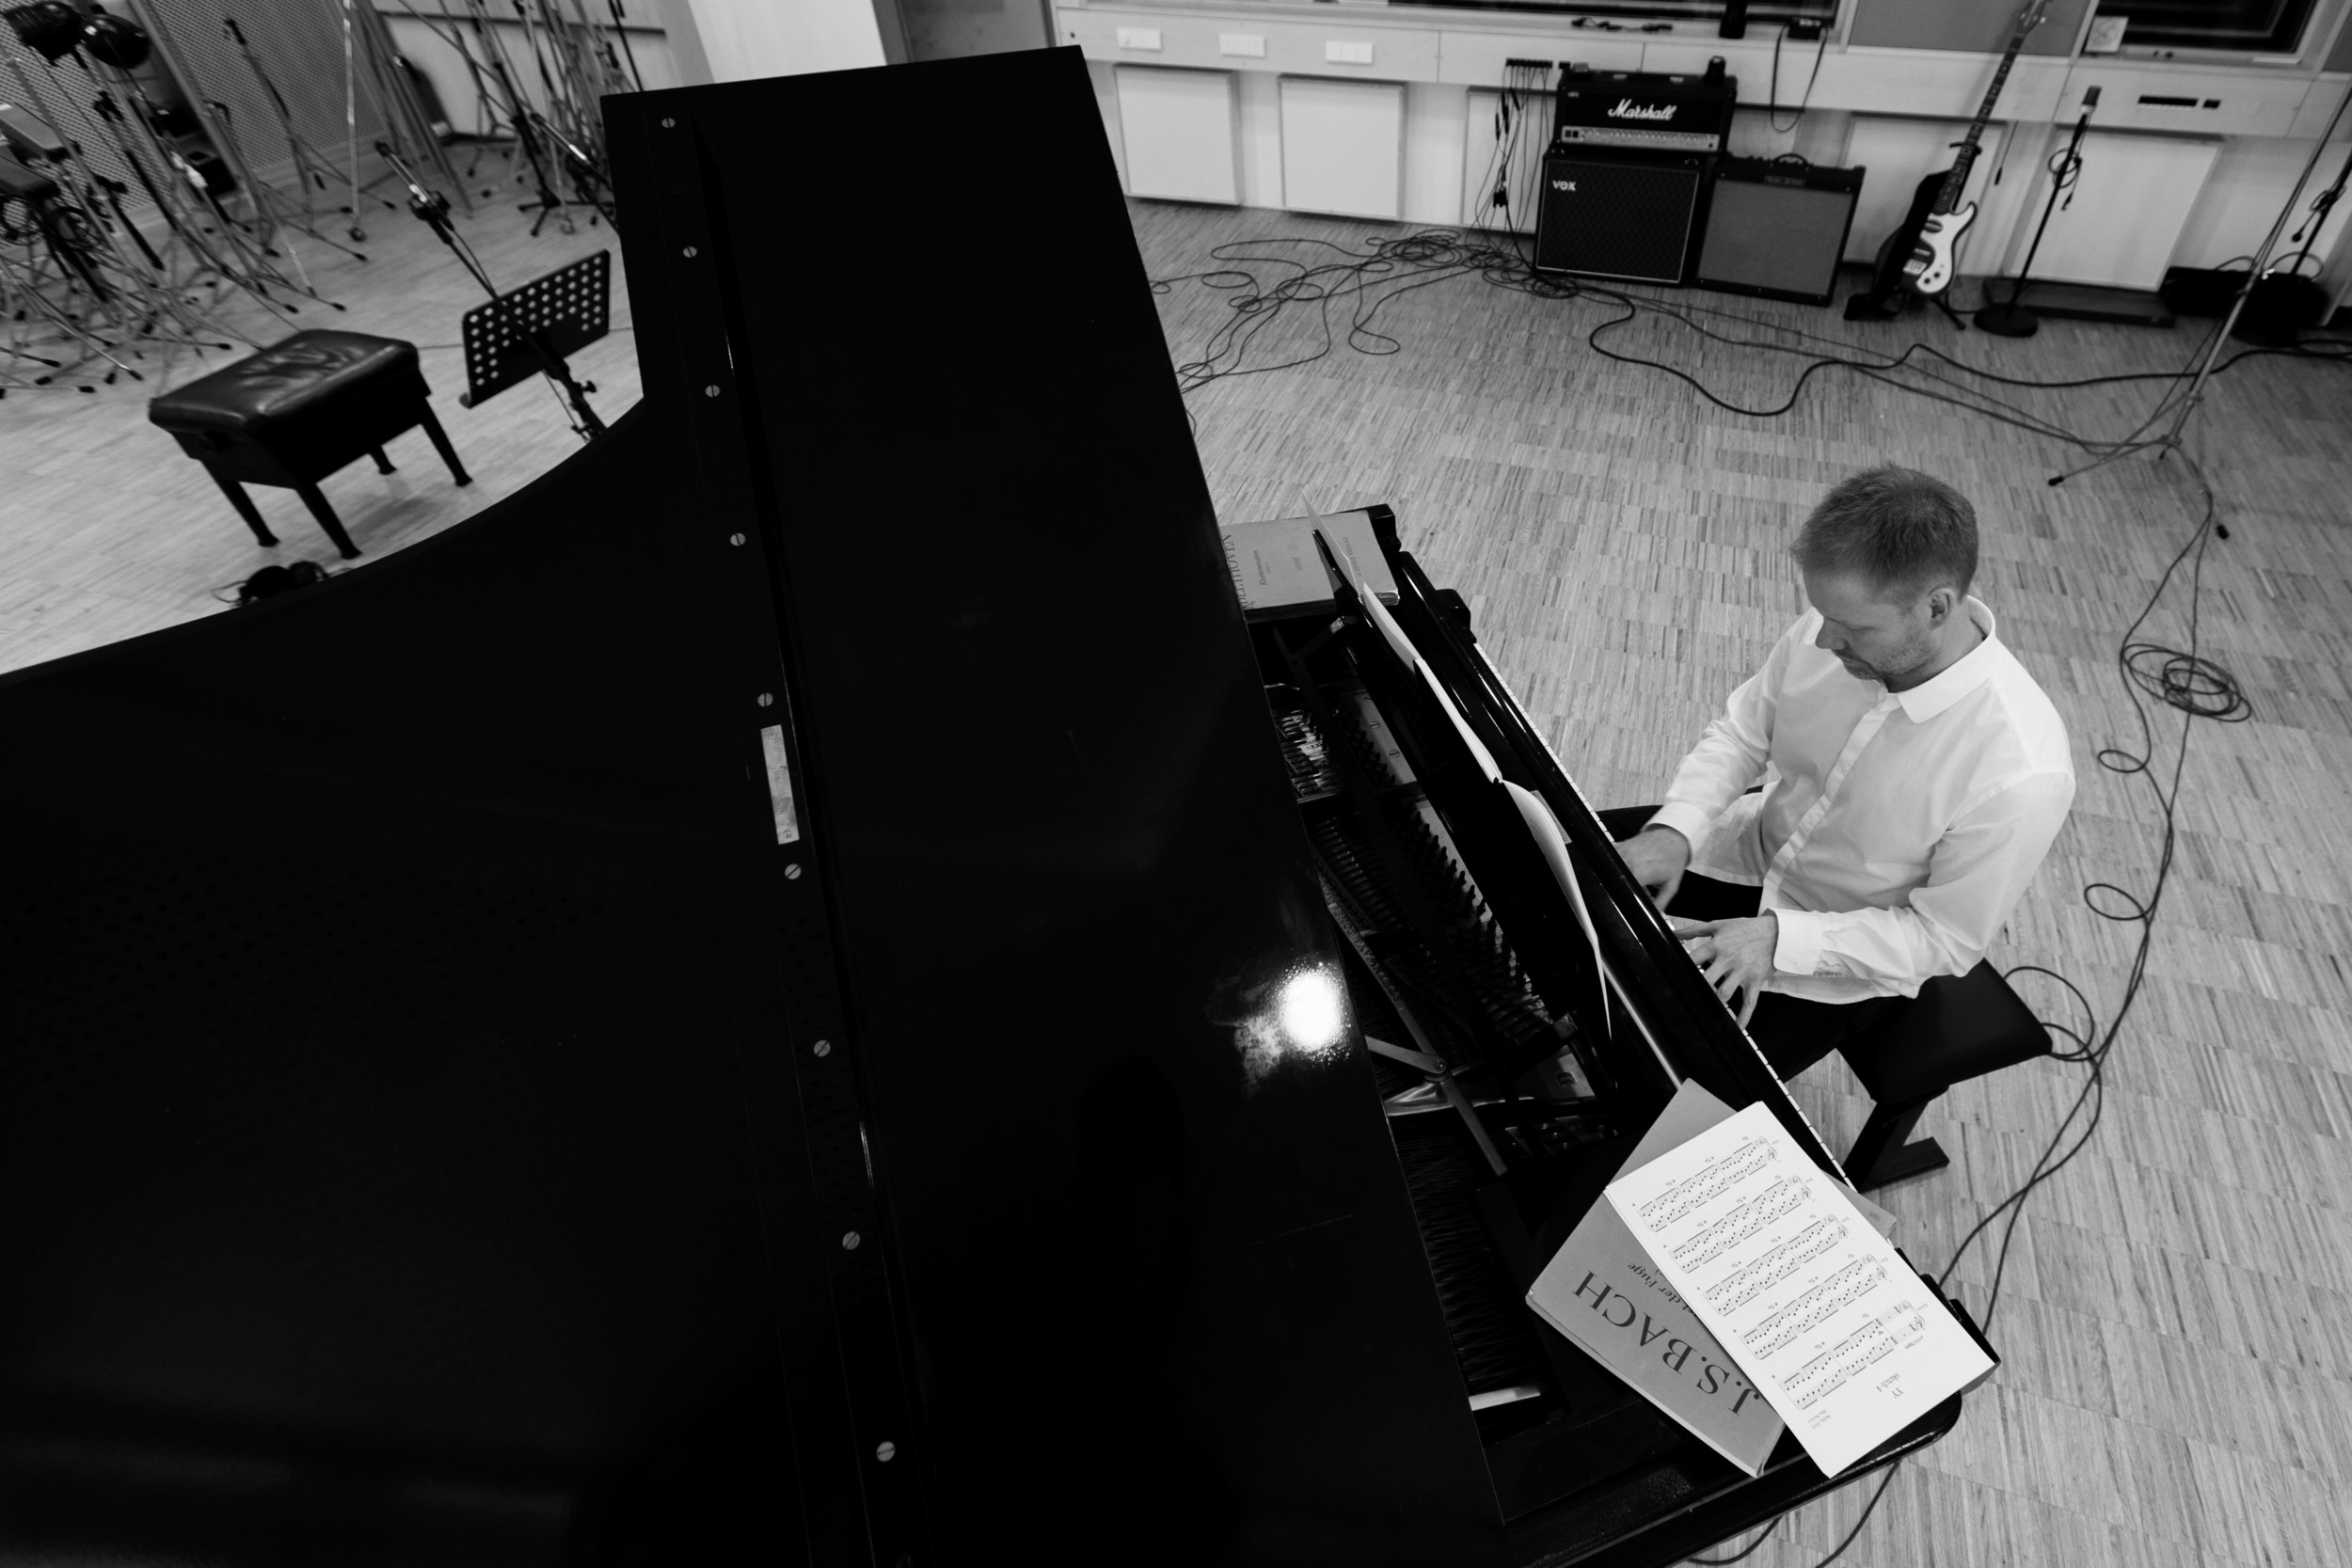 Max Richter, photograph by Wolfgang Borrs